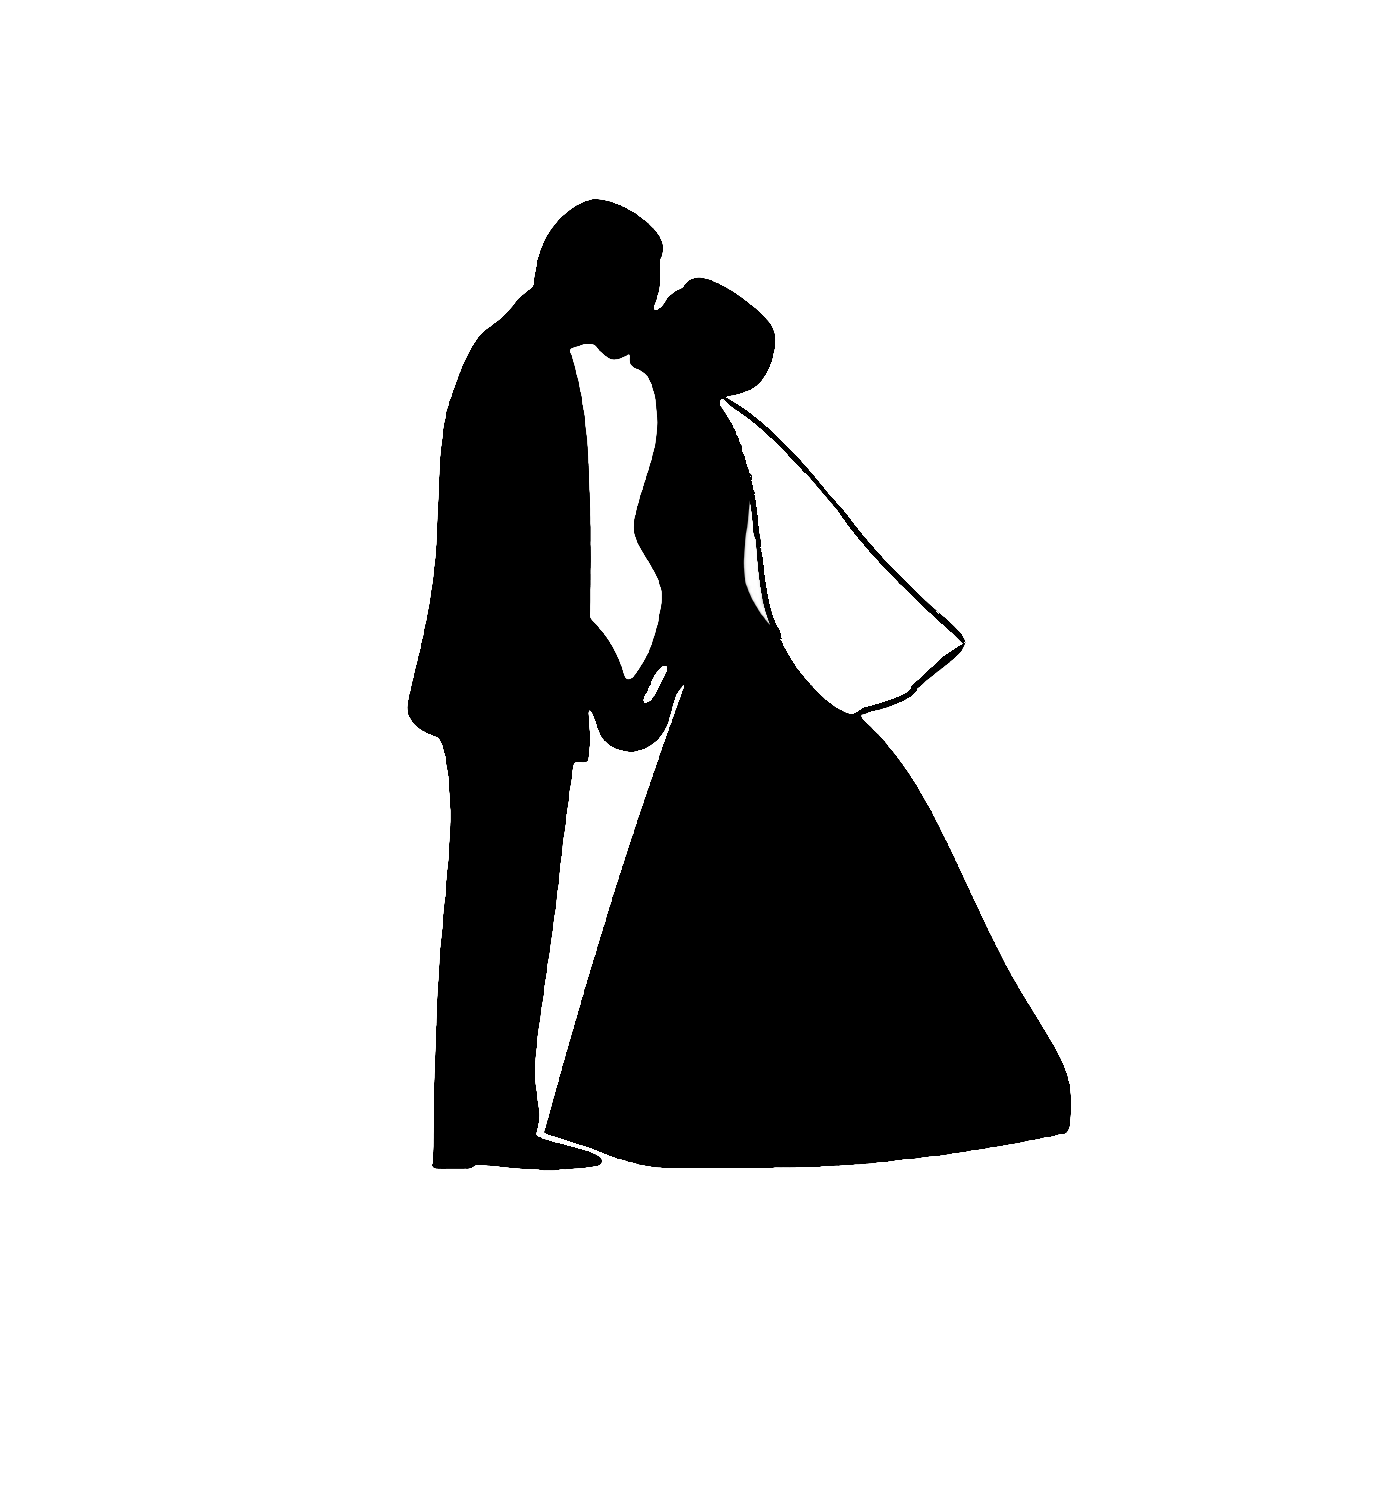 bridal silhouette clip art at getdrawings com free for personal rh getdrawings com free indian wedding clipart images free wedding dress clipart images